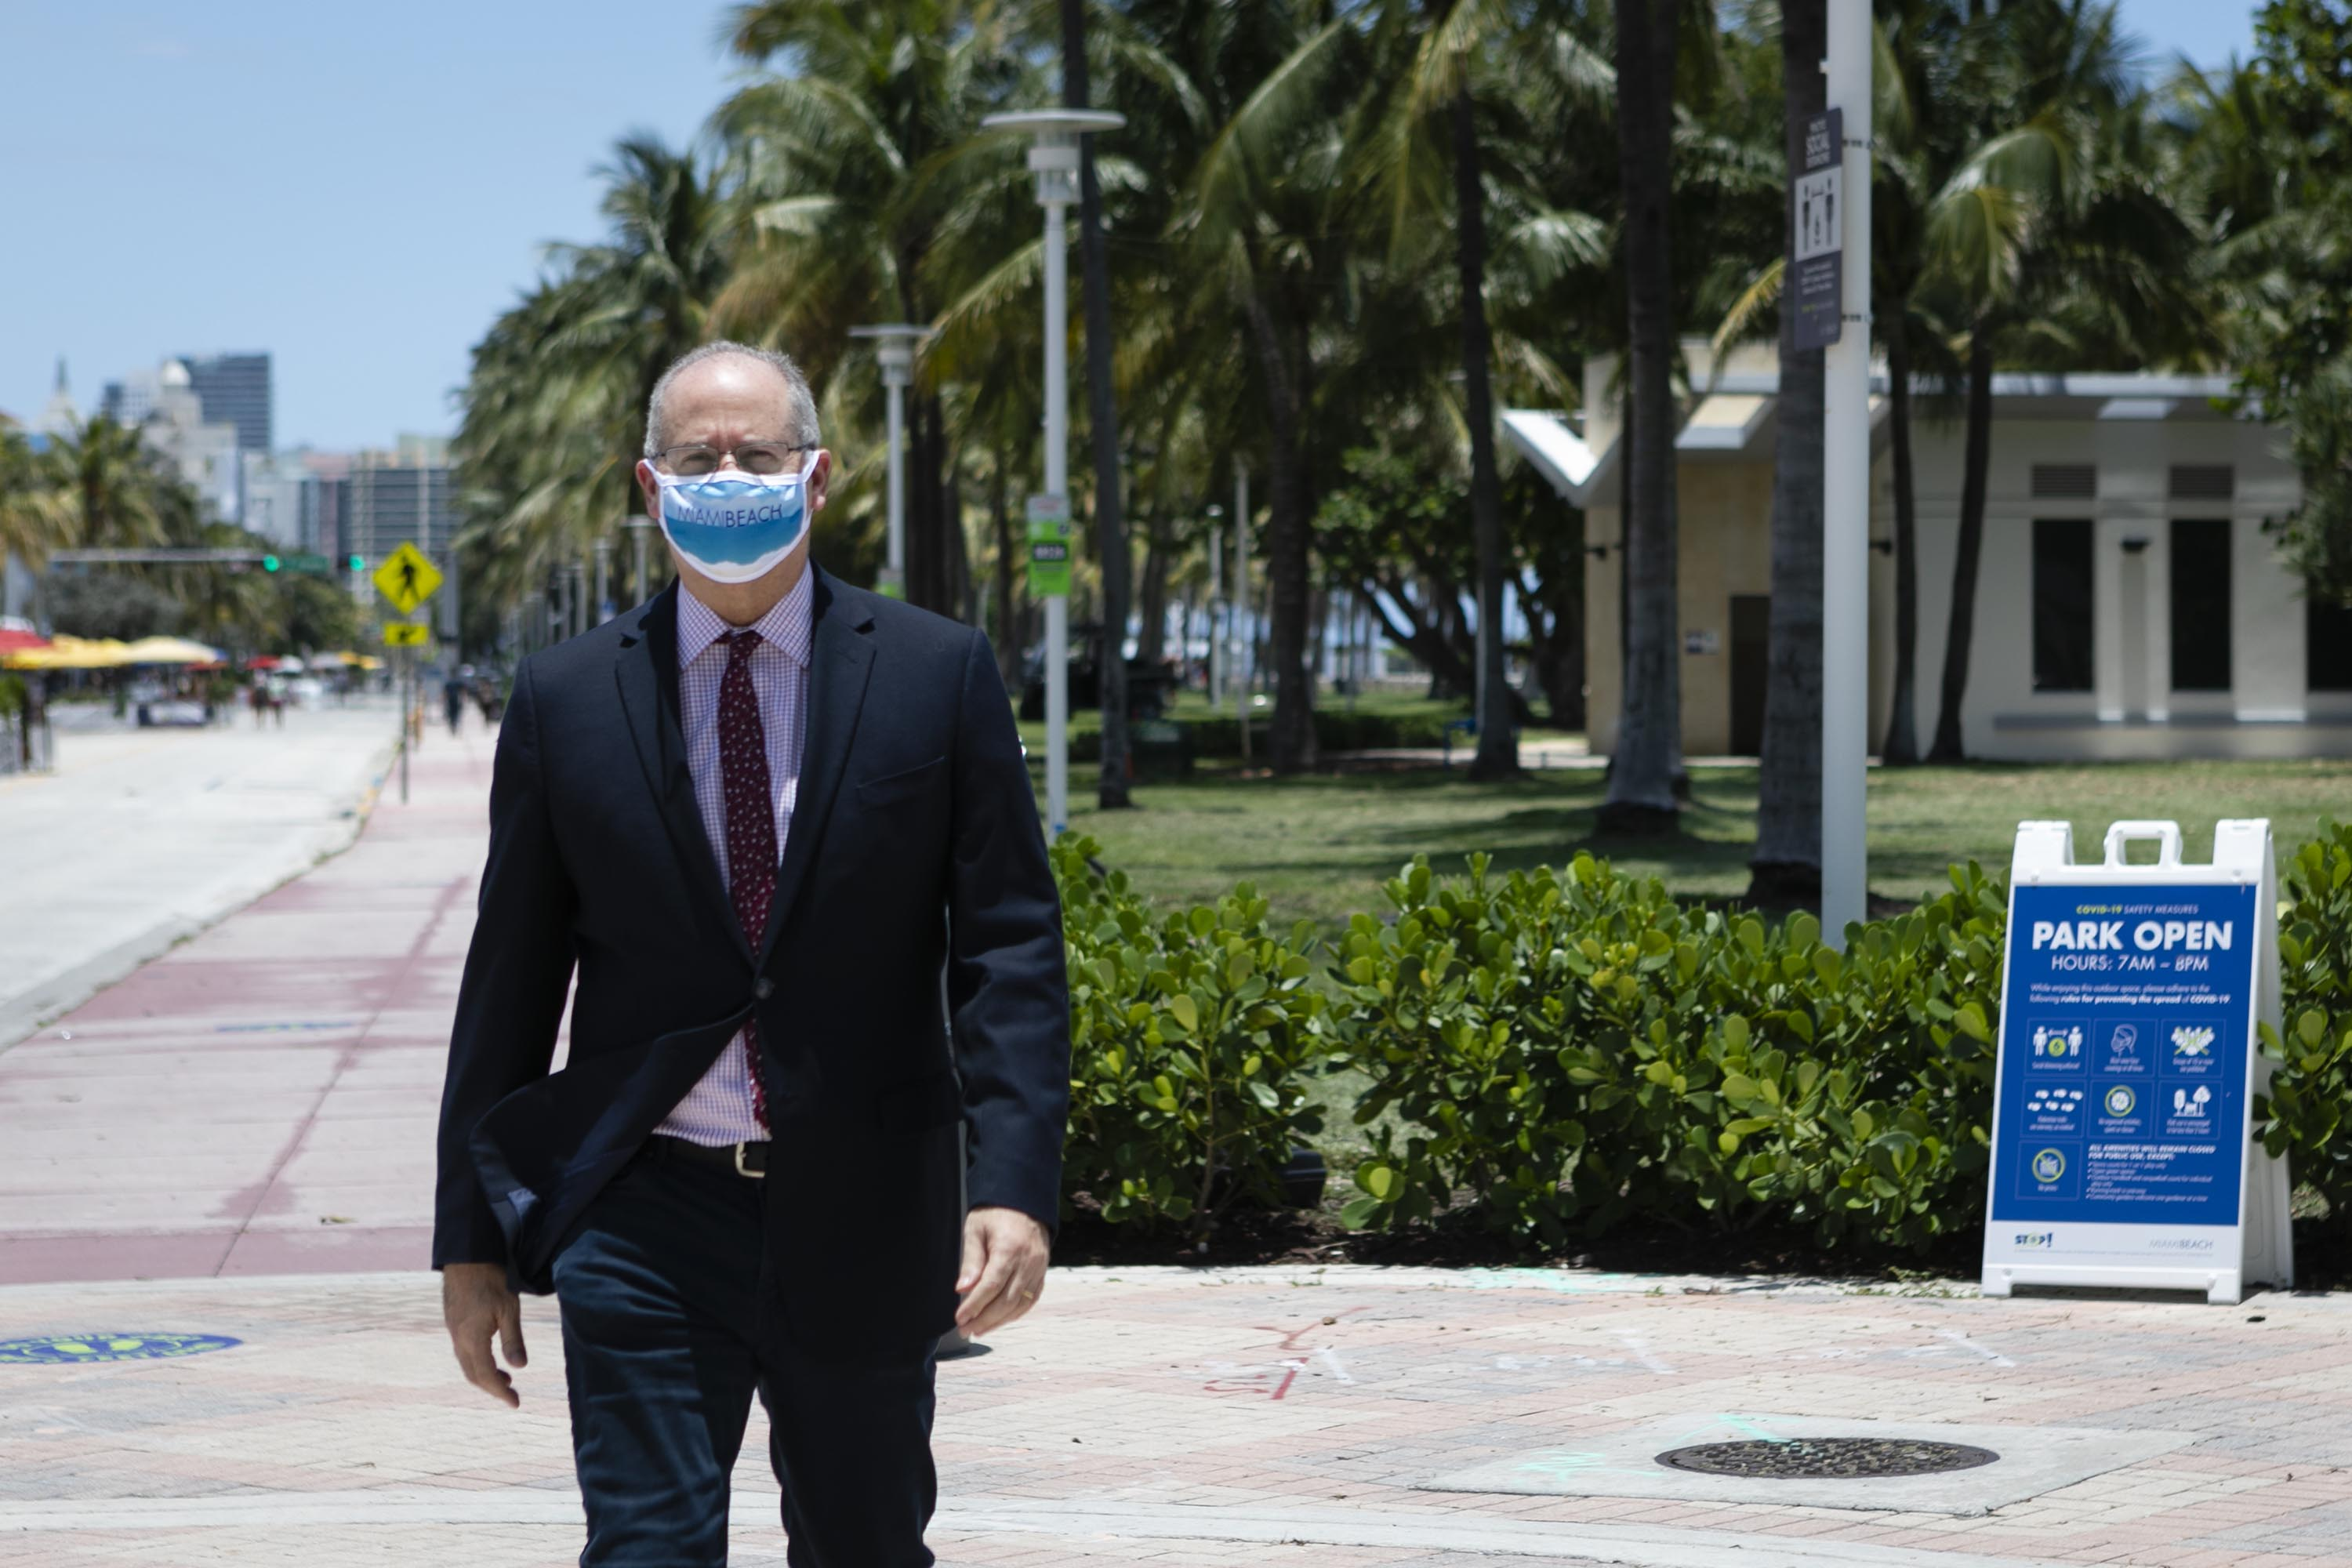 Miami Beach Mayor Dan Gelber is pictured in Miami Beach, Florida, on June 16.